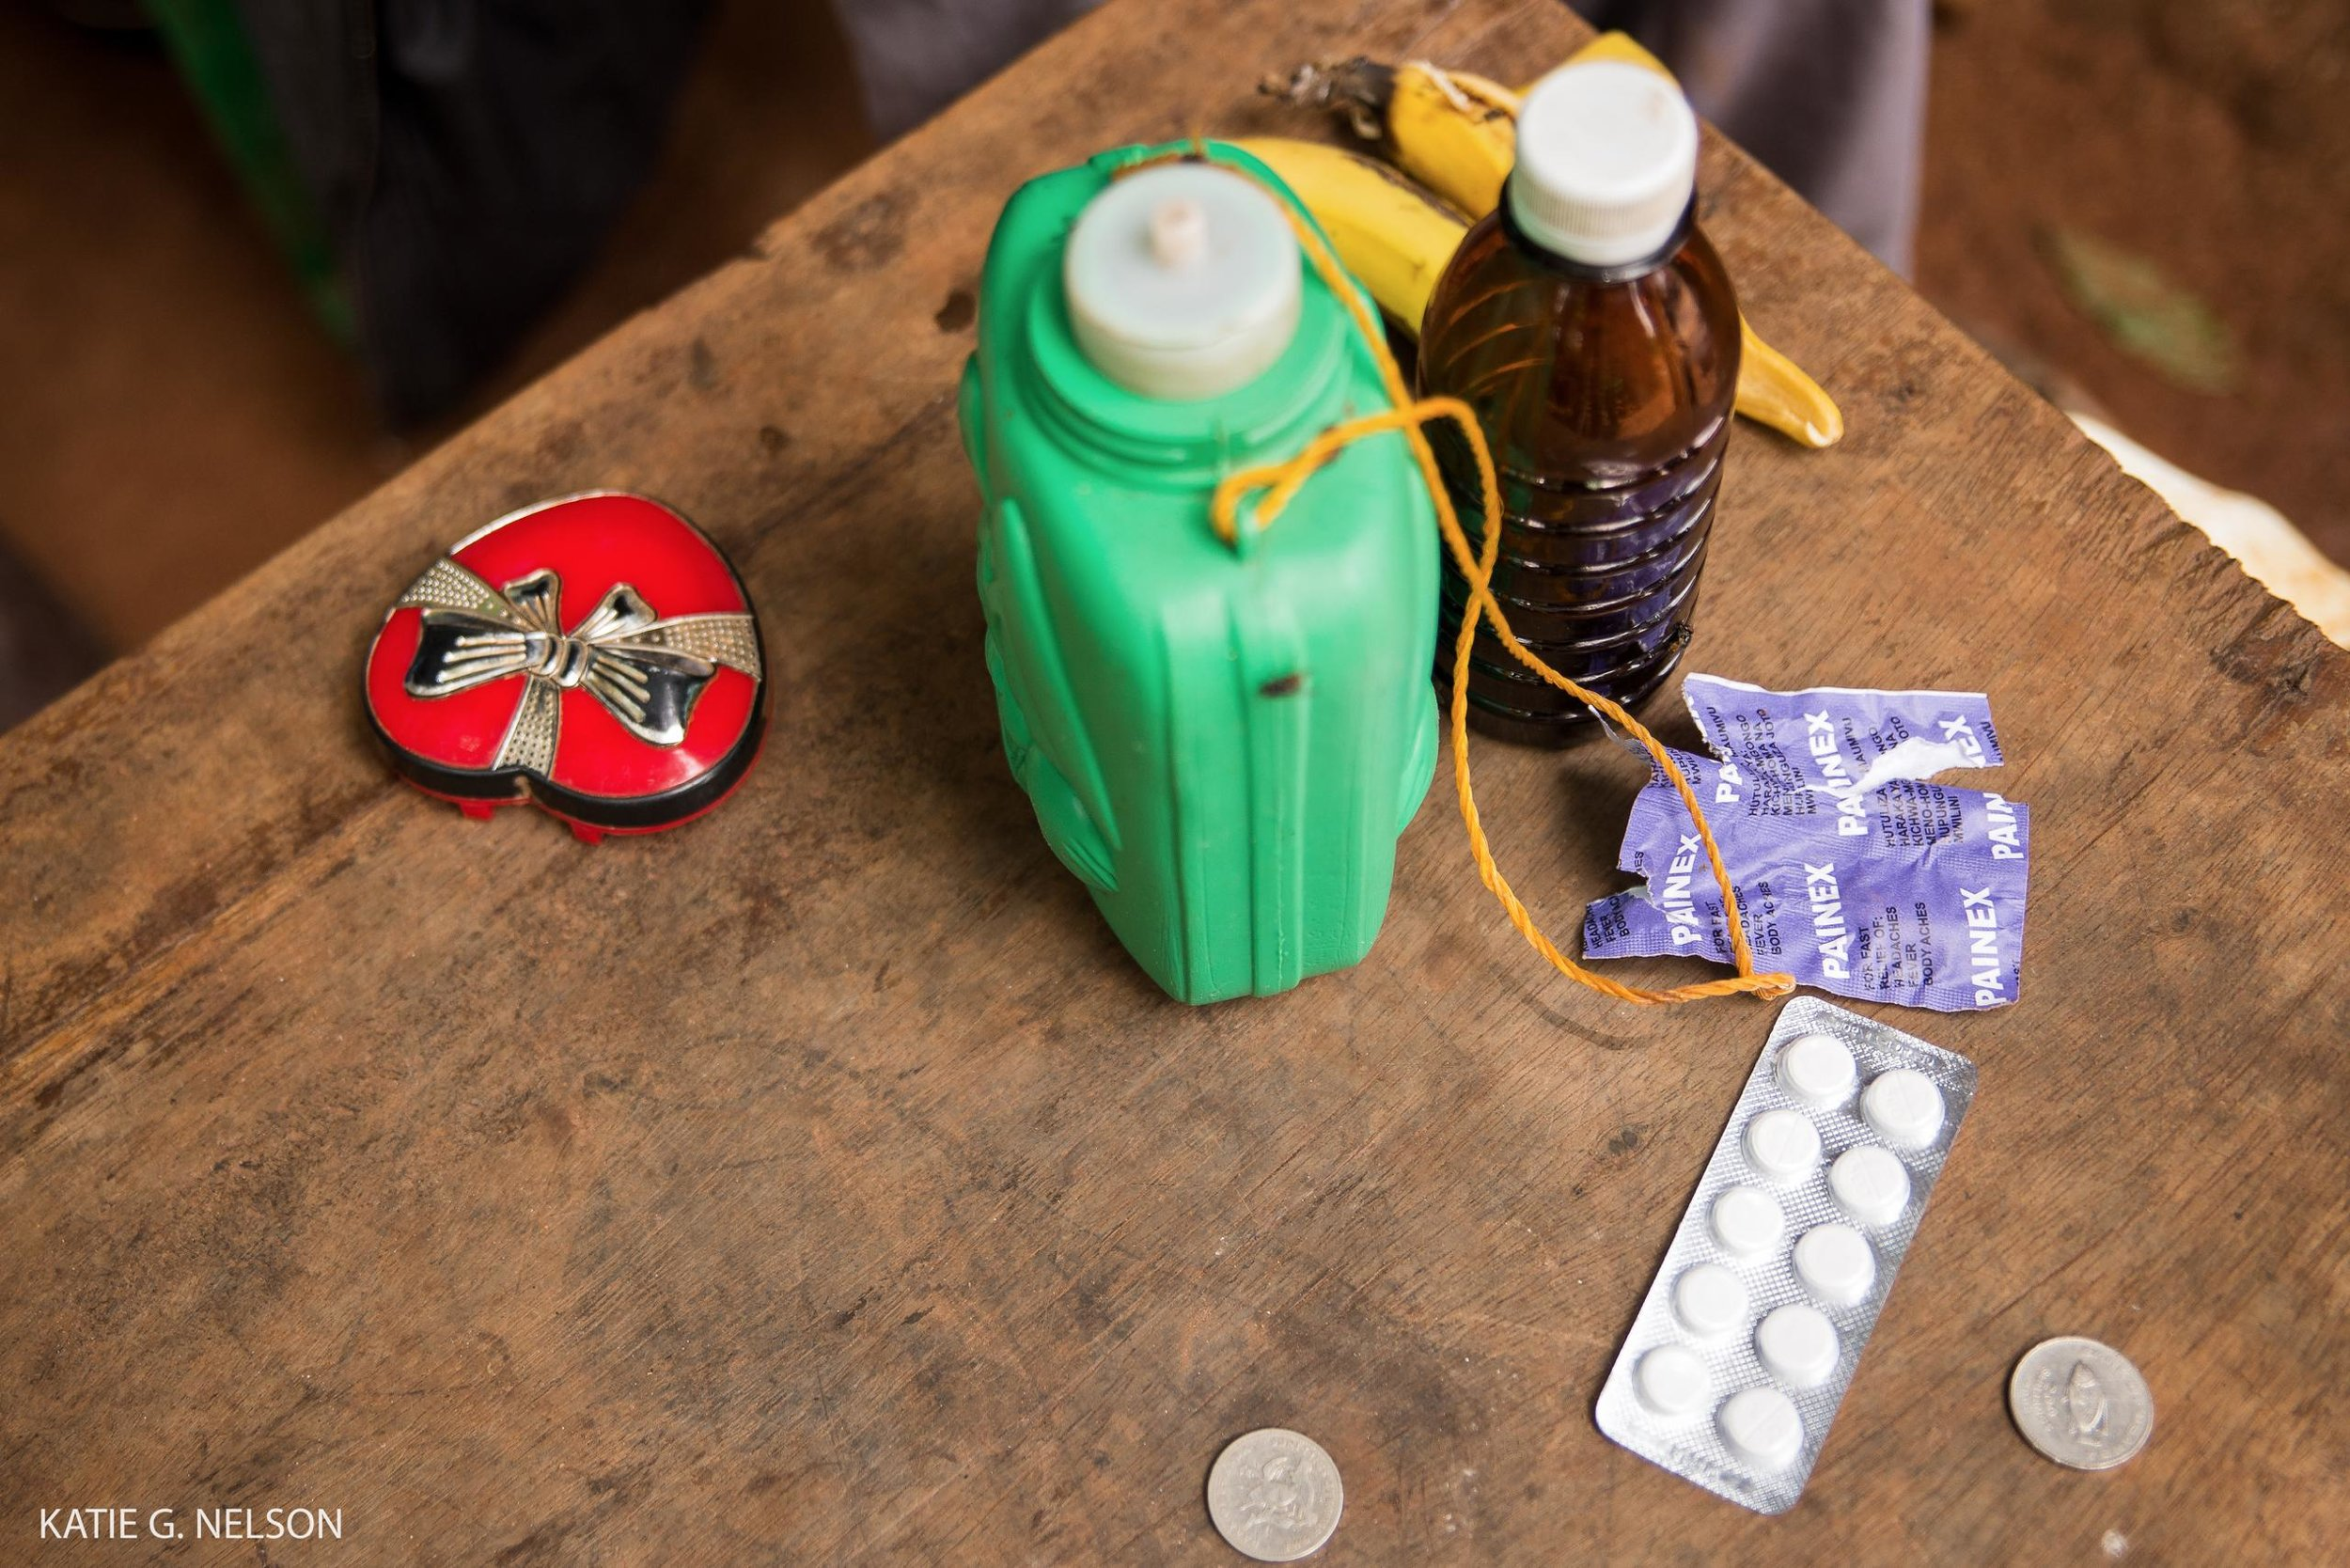 A table holding Gali's medication and a red pocket mirror.